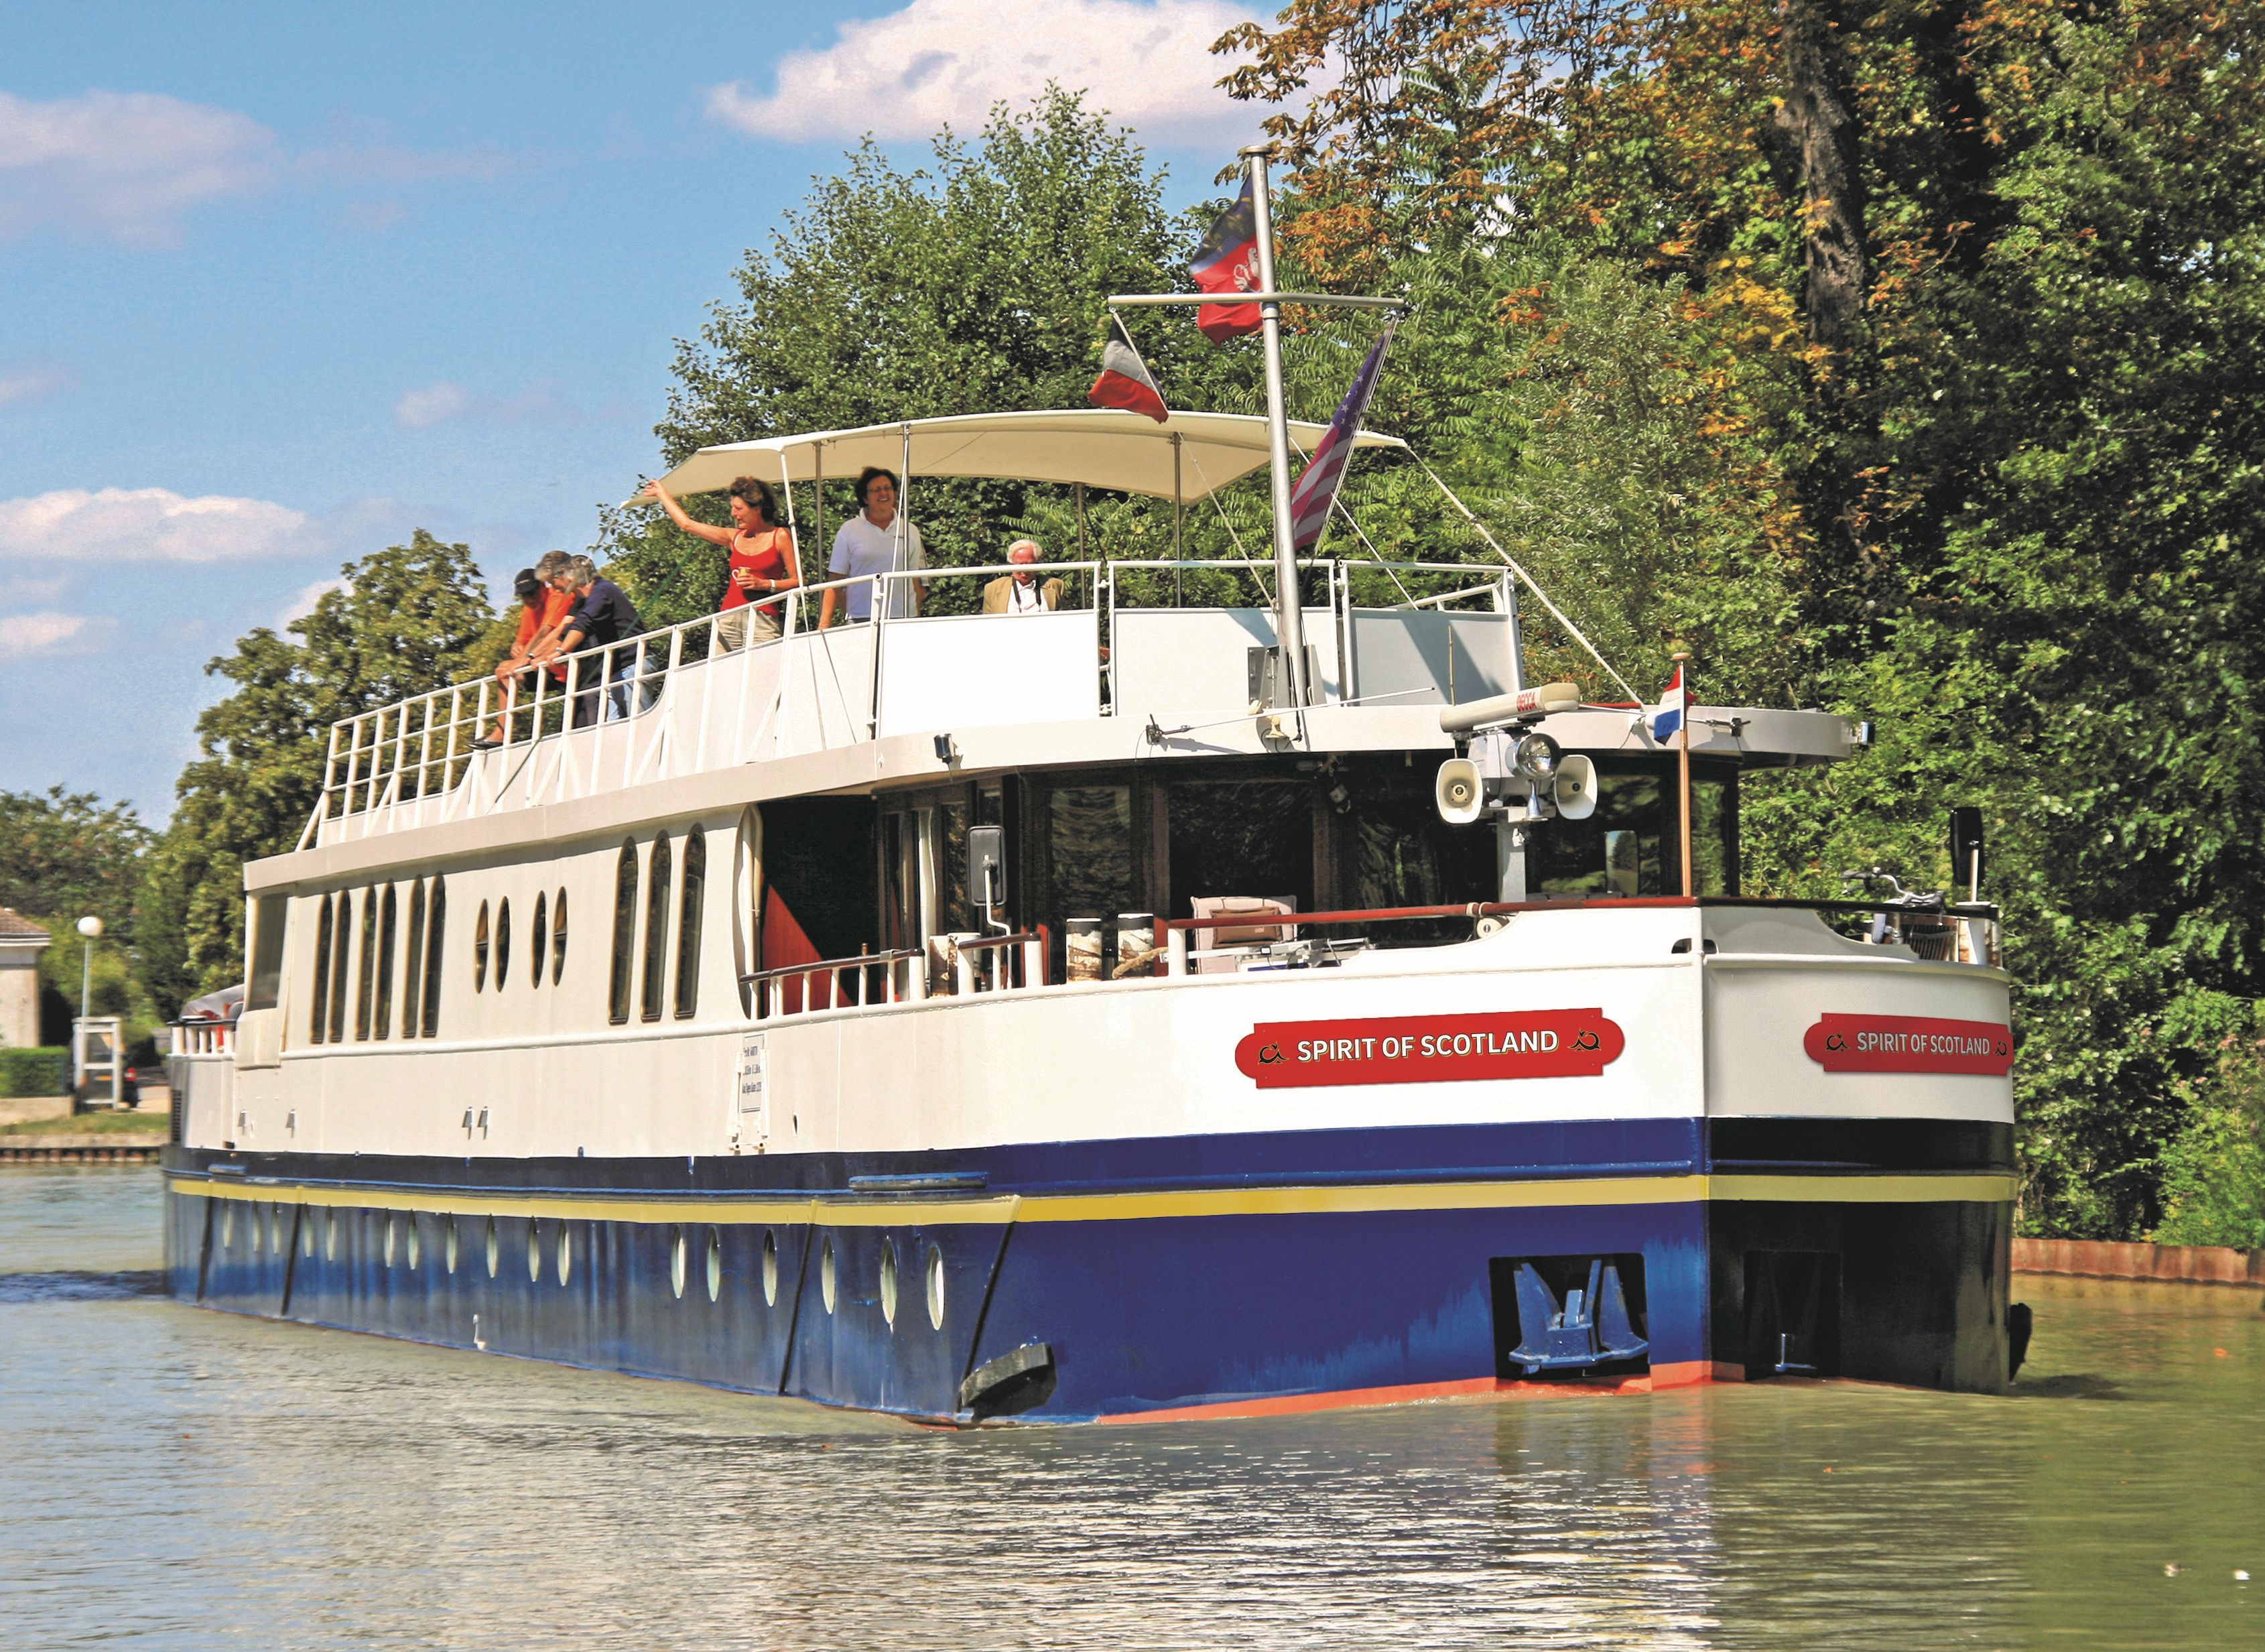 European Waterways Announces New Luxury Hotel Barge for Scotland ...